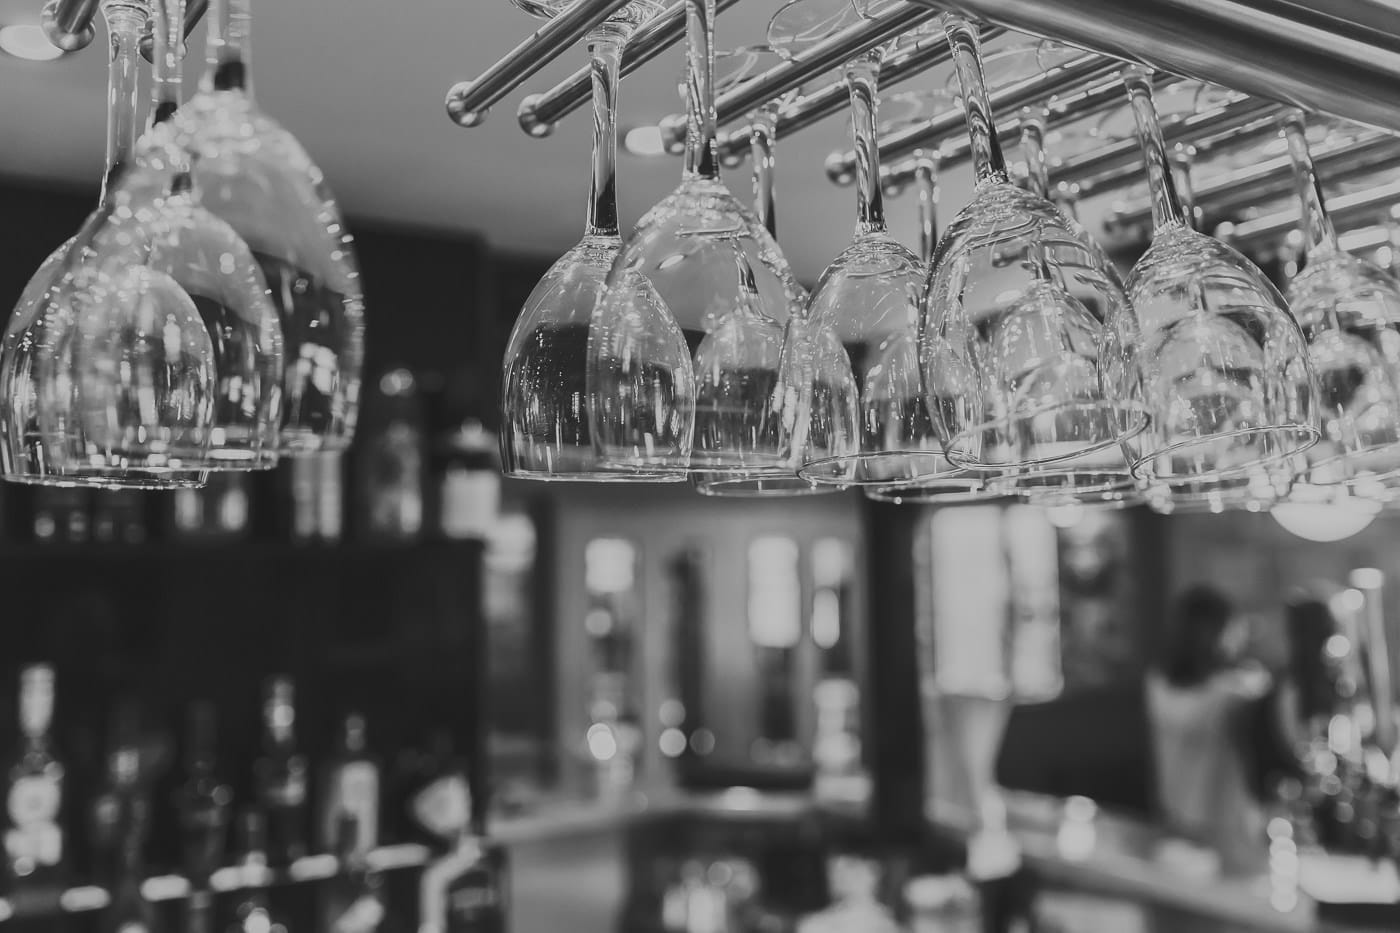 Black and white shot of wine glasses hanging above a bar